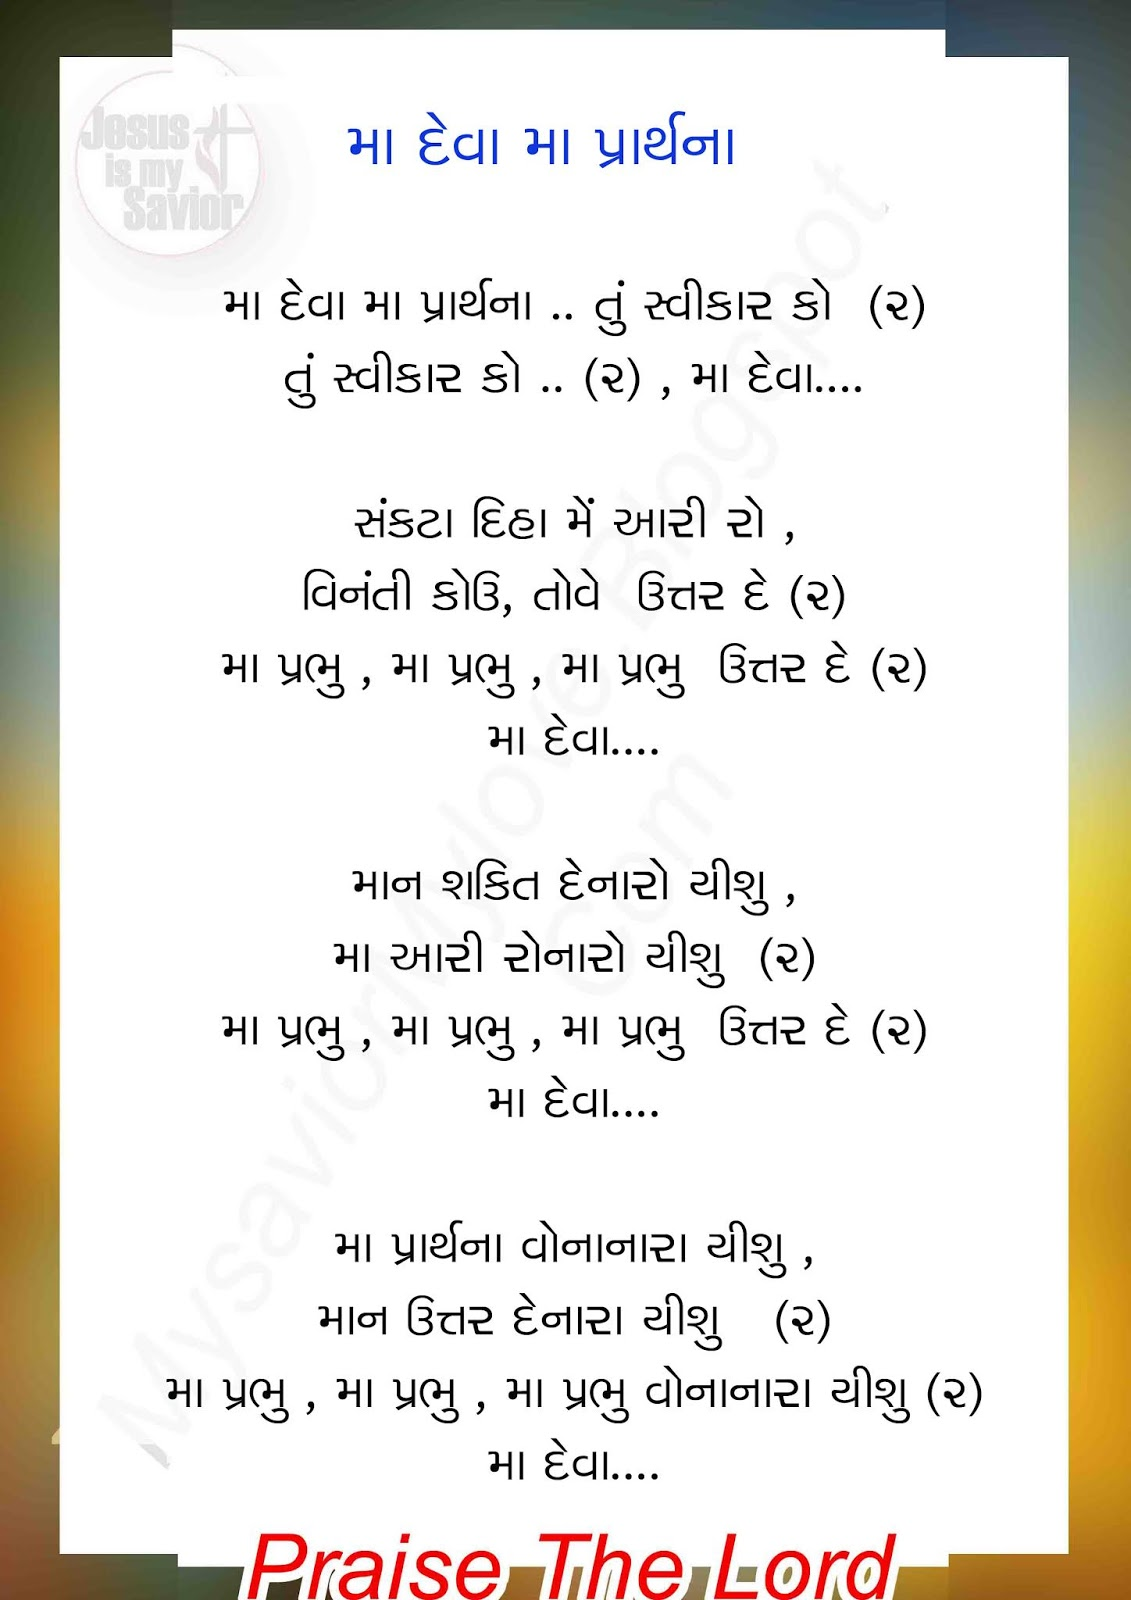 Rss prarthana meaning in hindi